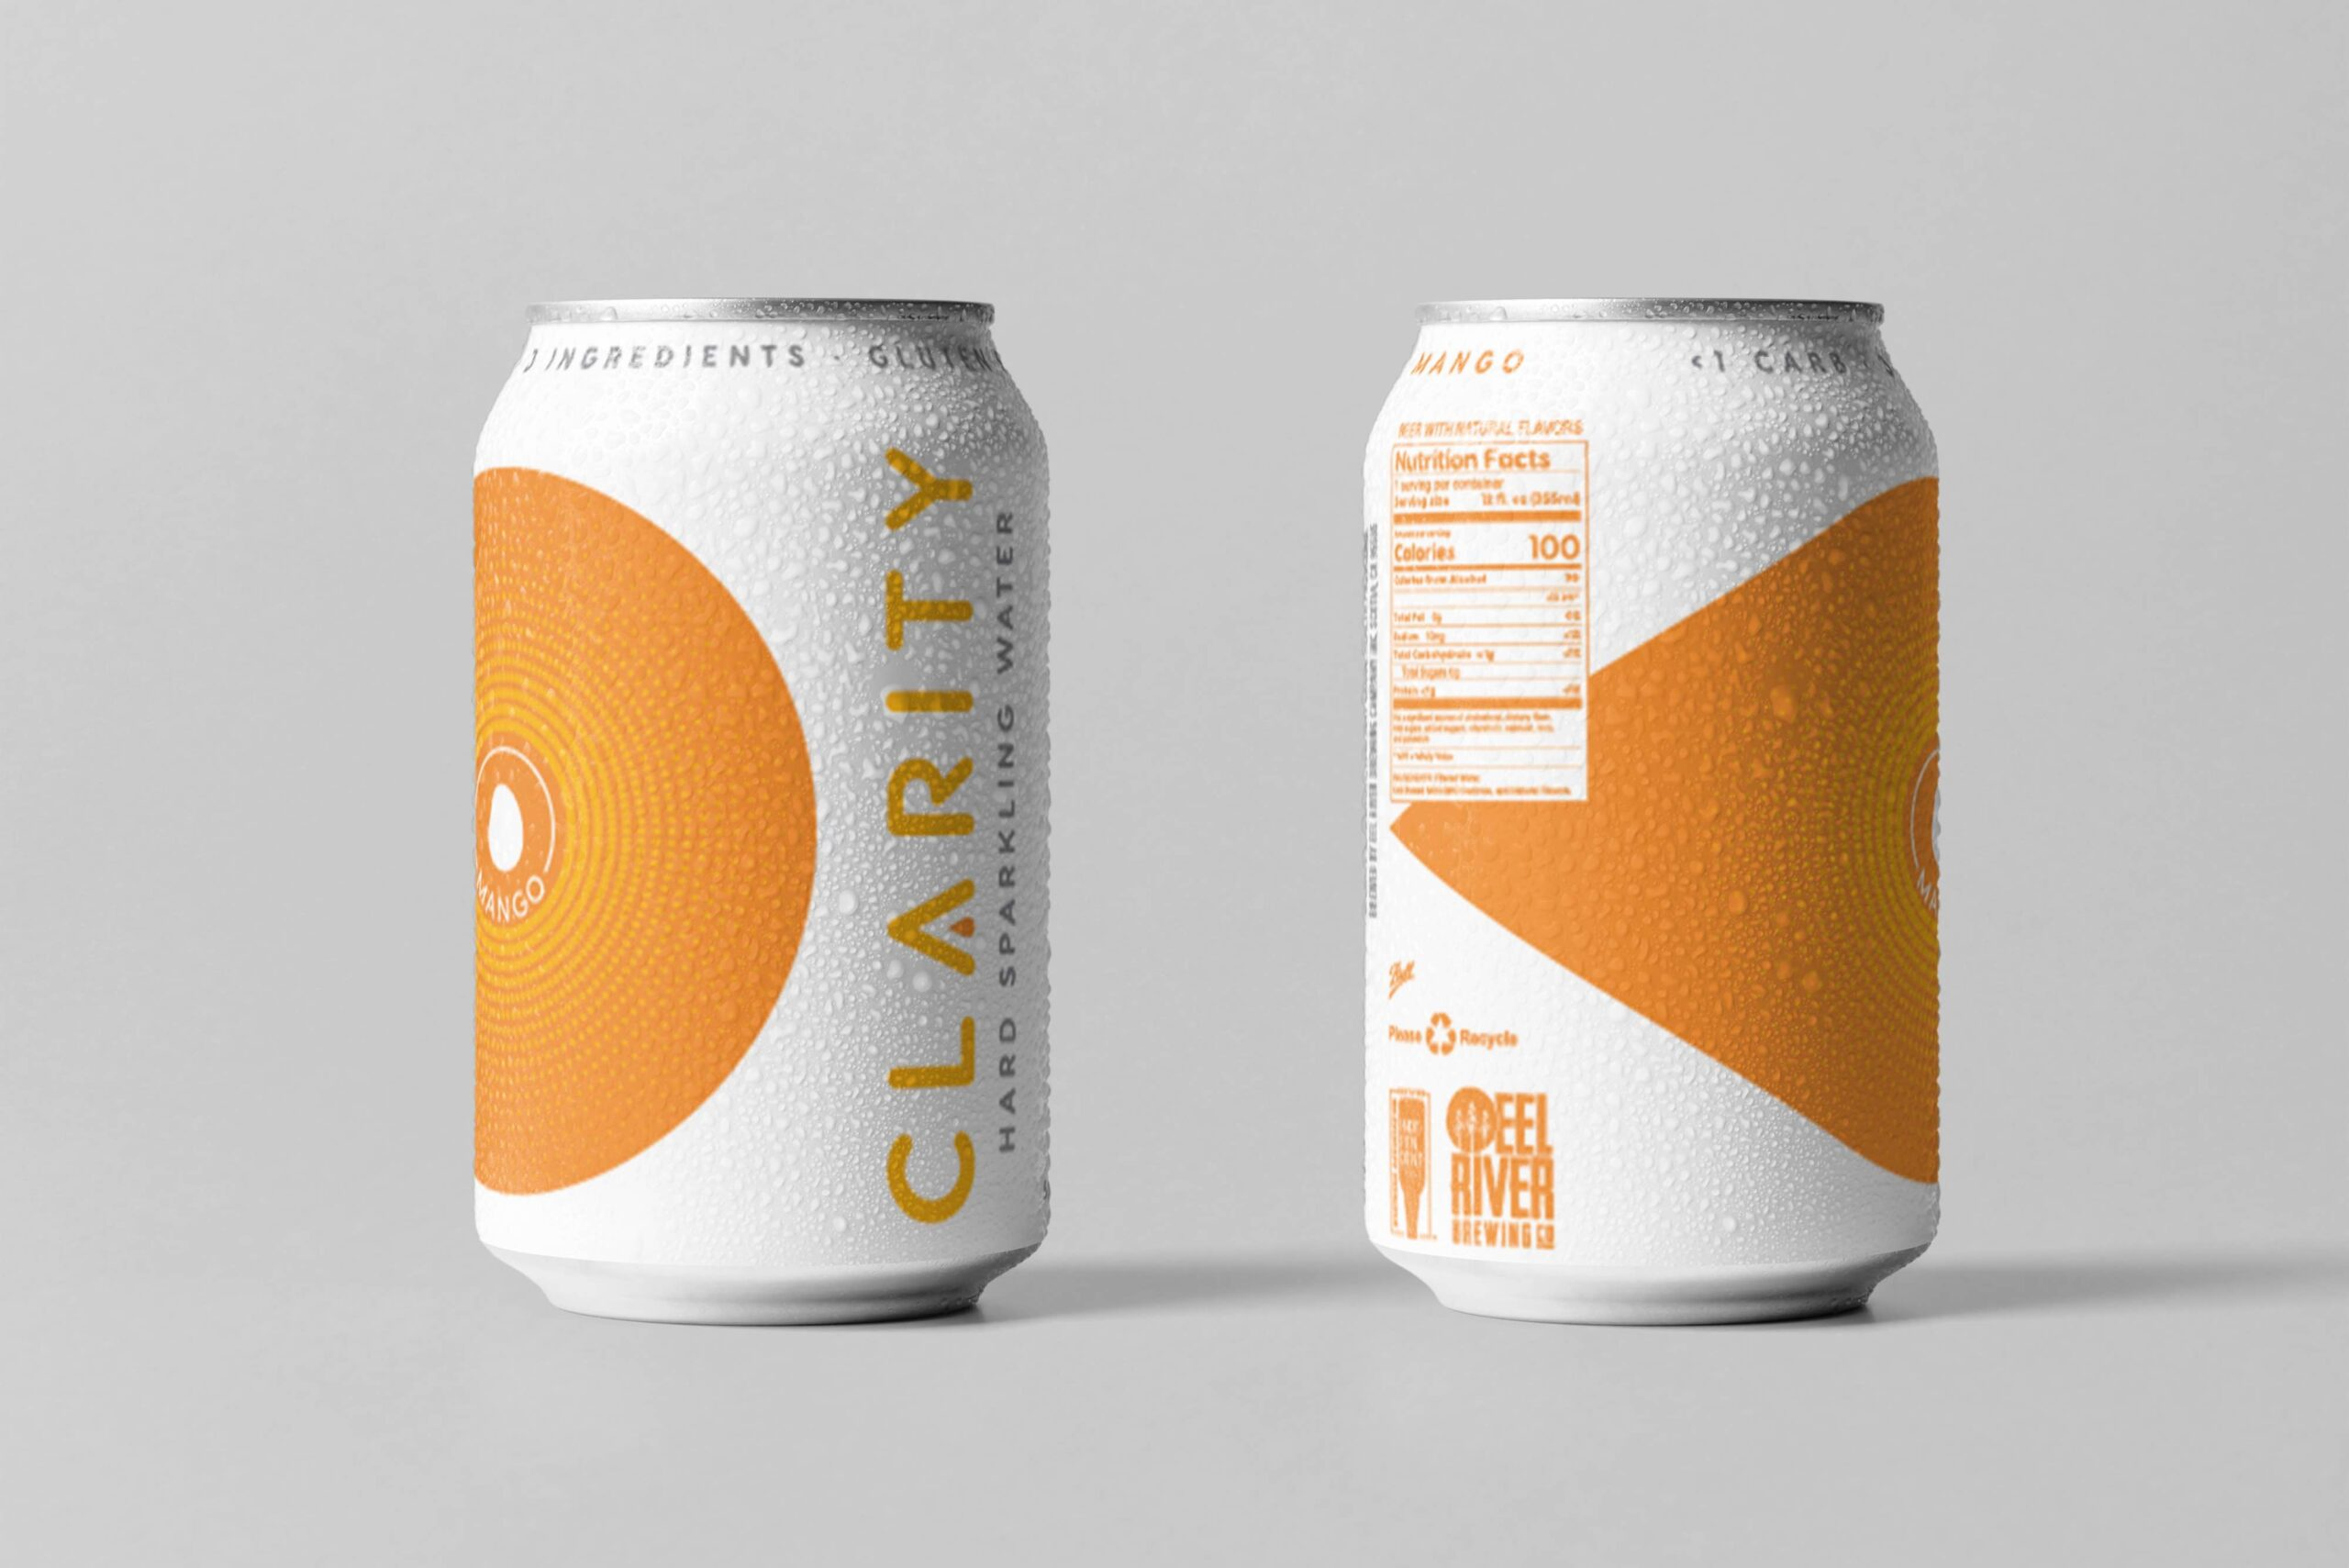 Clarity hard sparkling water mango can design concepts beer can design hard seltzer can design packaging design